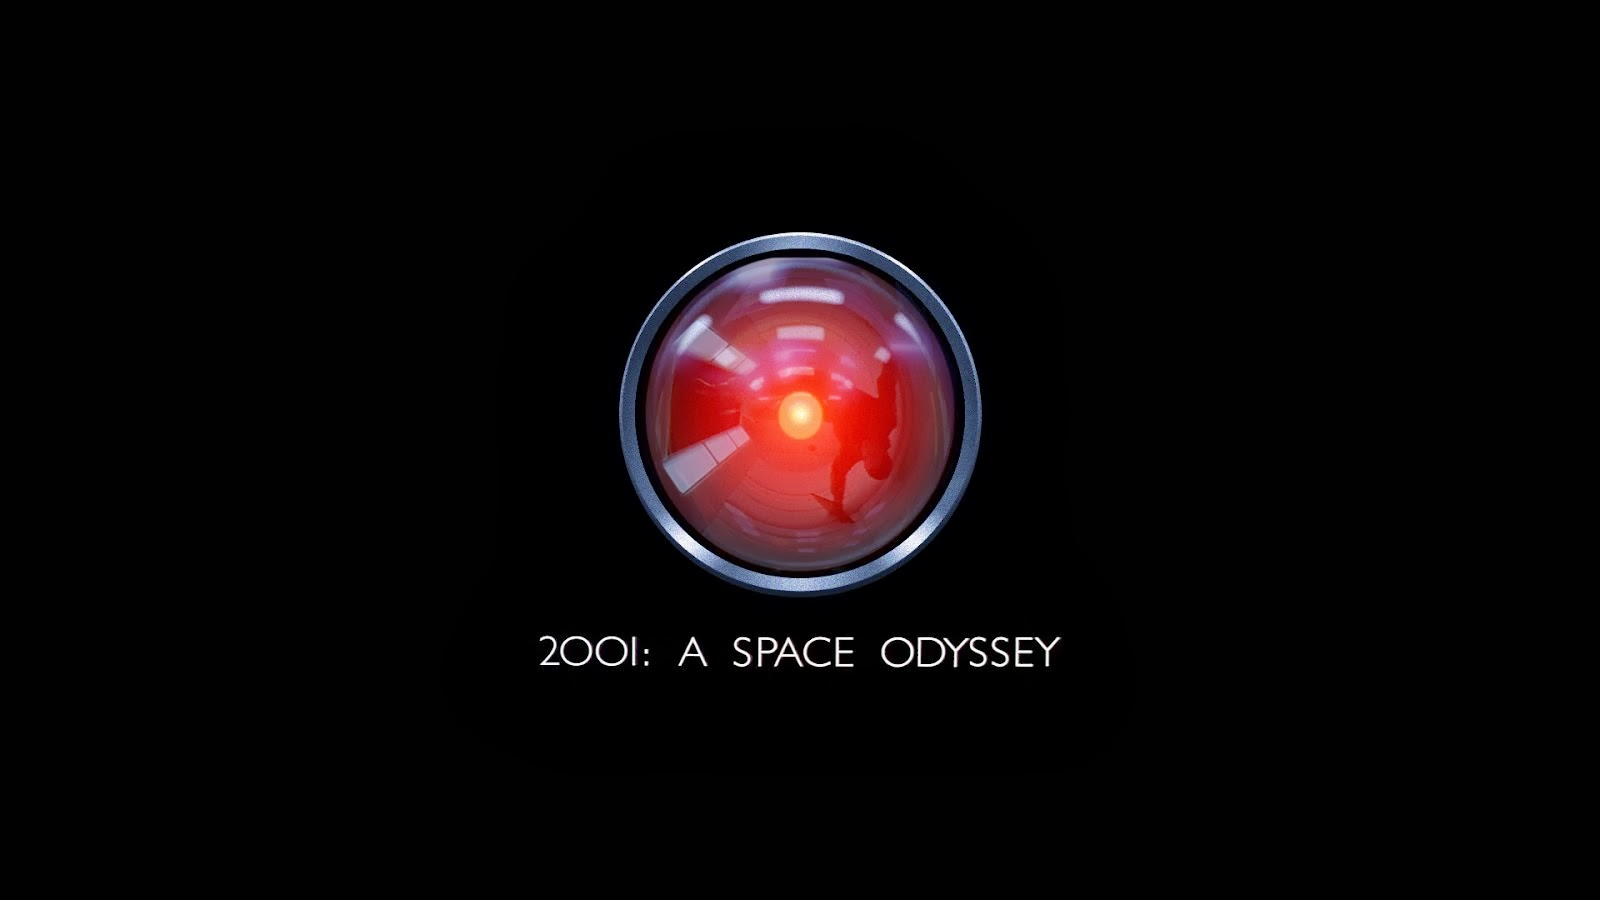 2001 space odyssey wallpaper space wallpaper - 2001 a space odyssey wallpaper ...